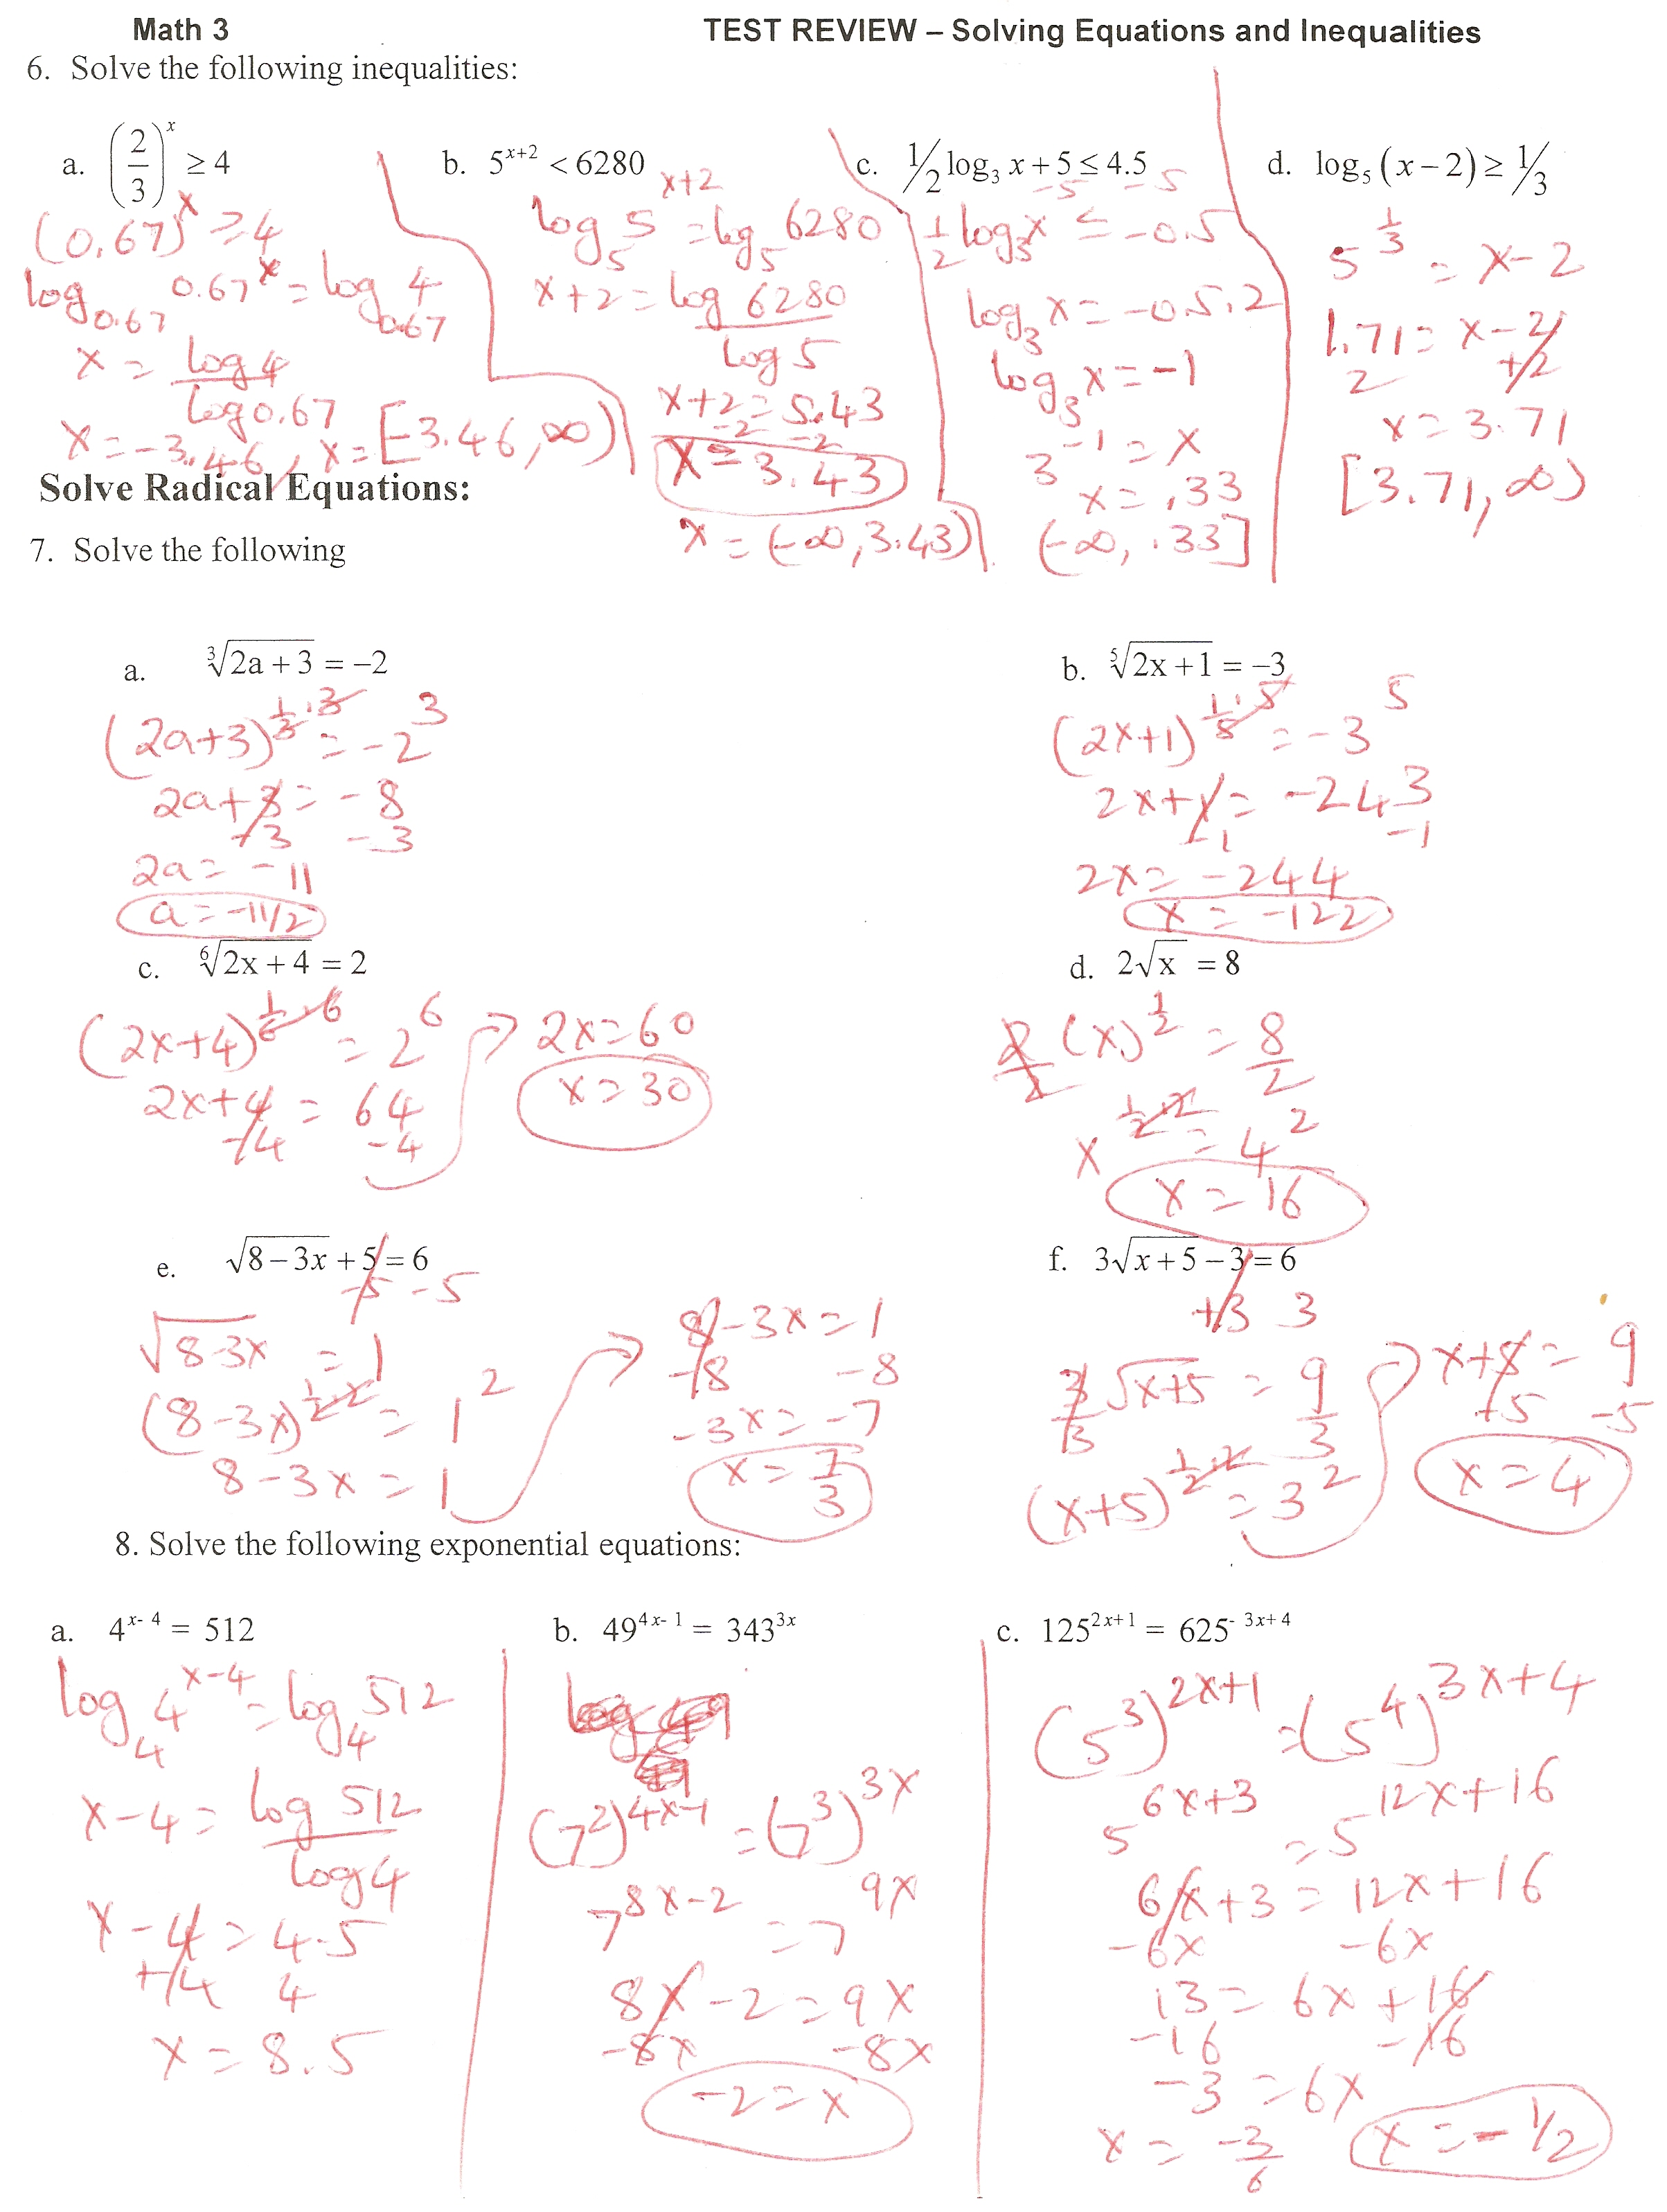 Worksheets Solving Exponential Equations Worksheet solving exponential and log equations test review ms osawaru view this photo